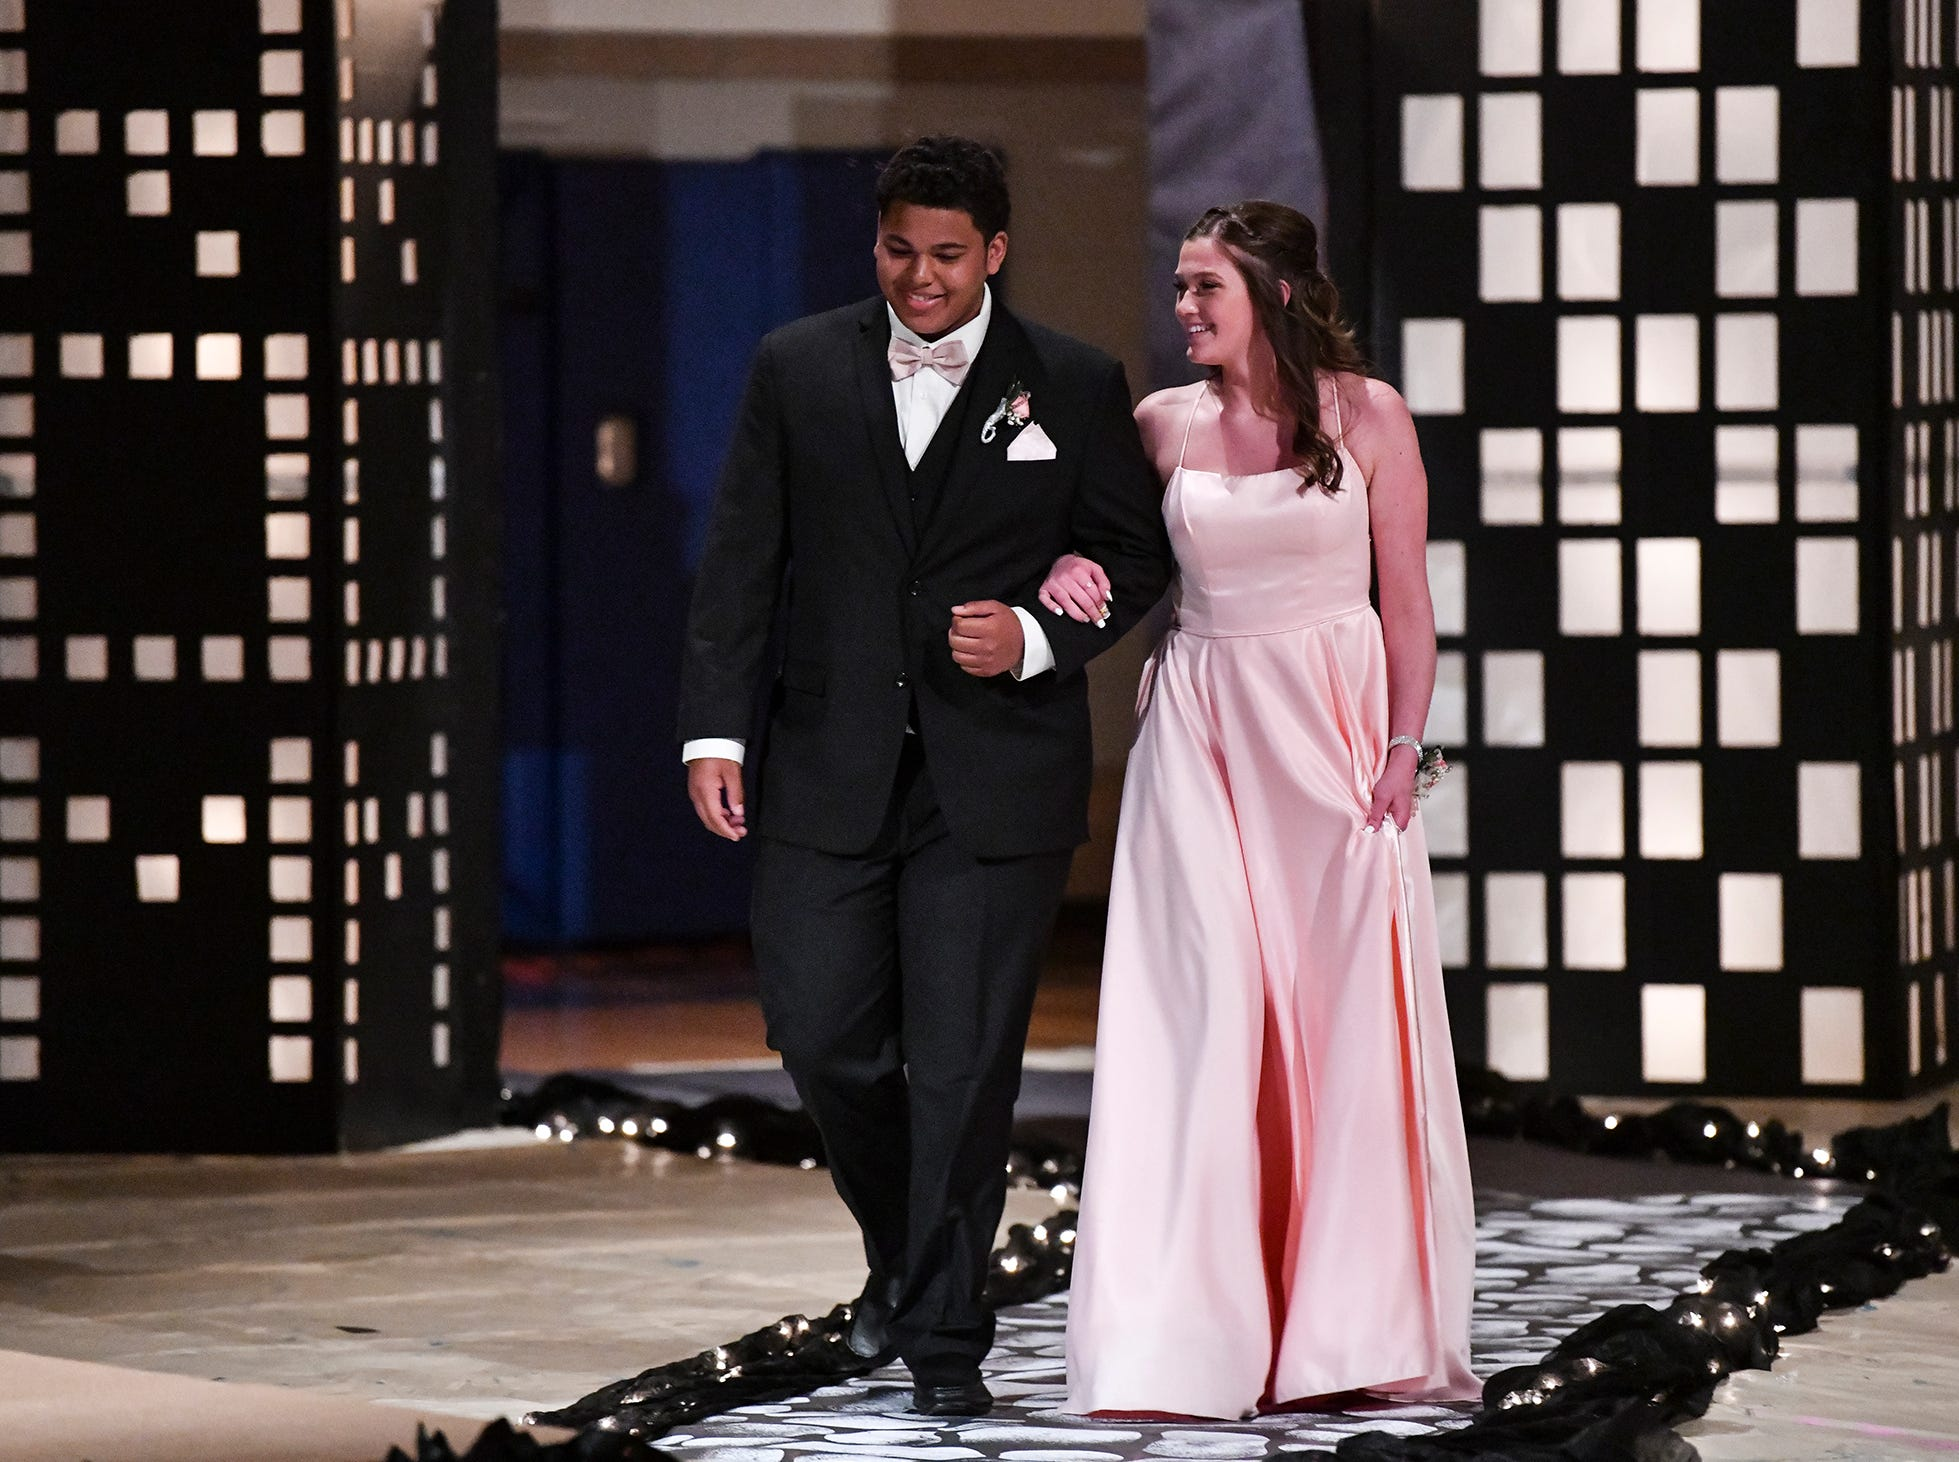 A Couple smiles during prom grand march at Foley High School.